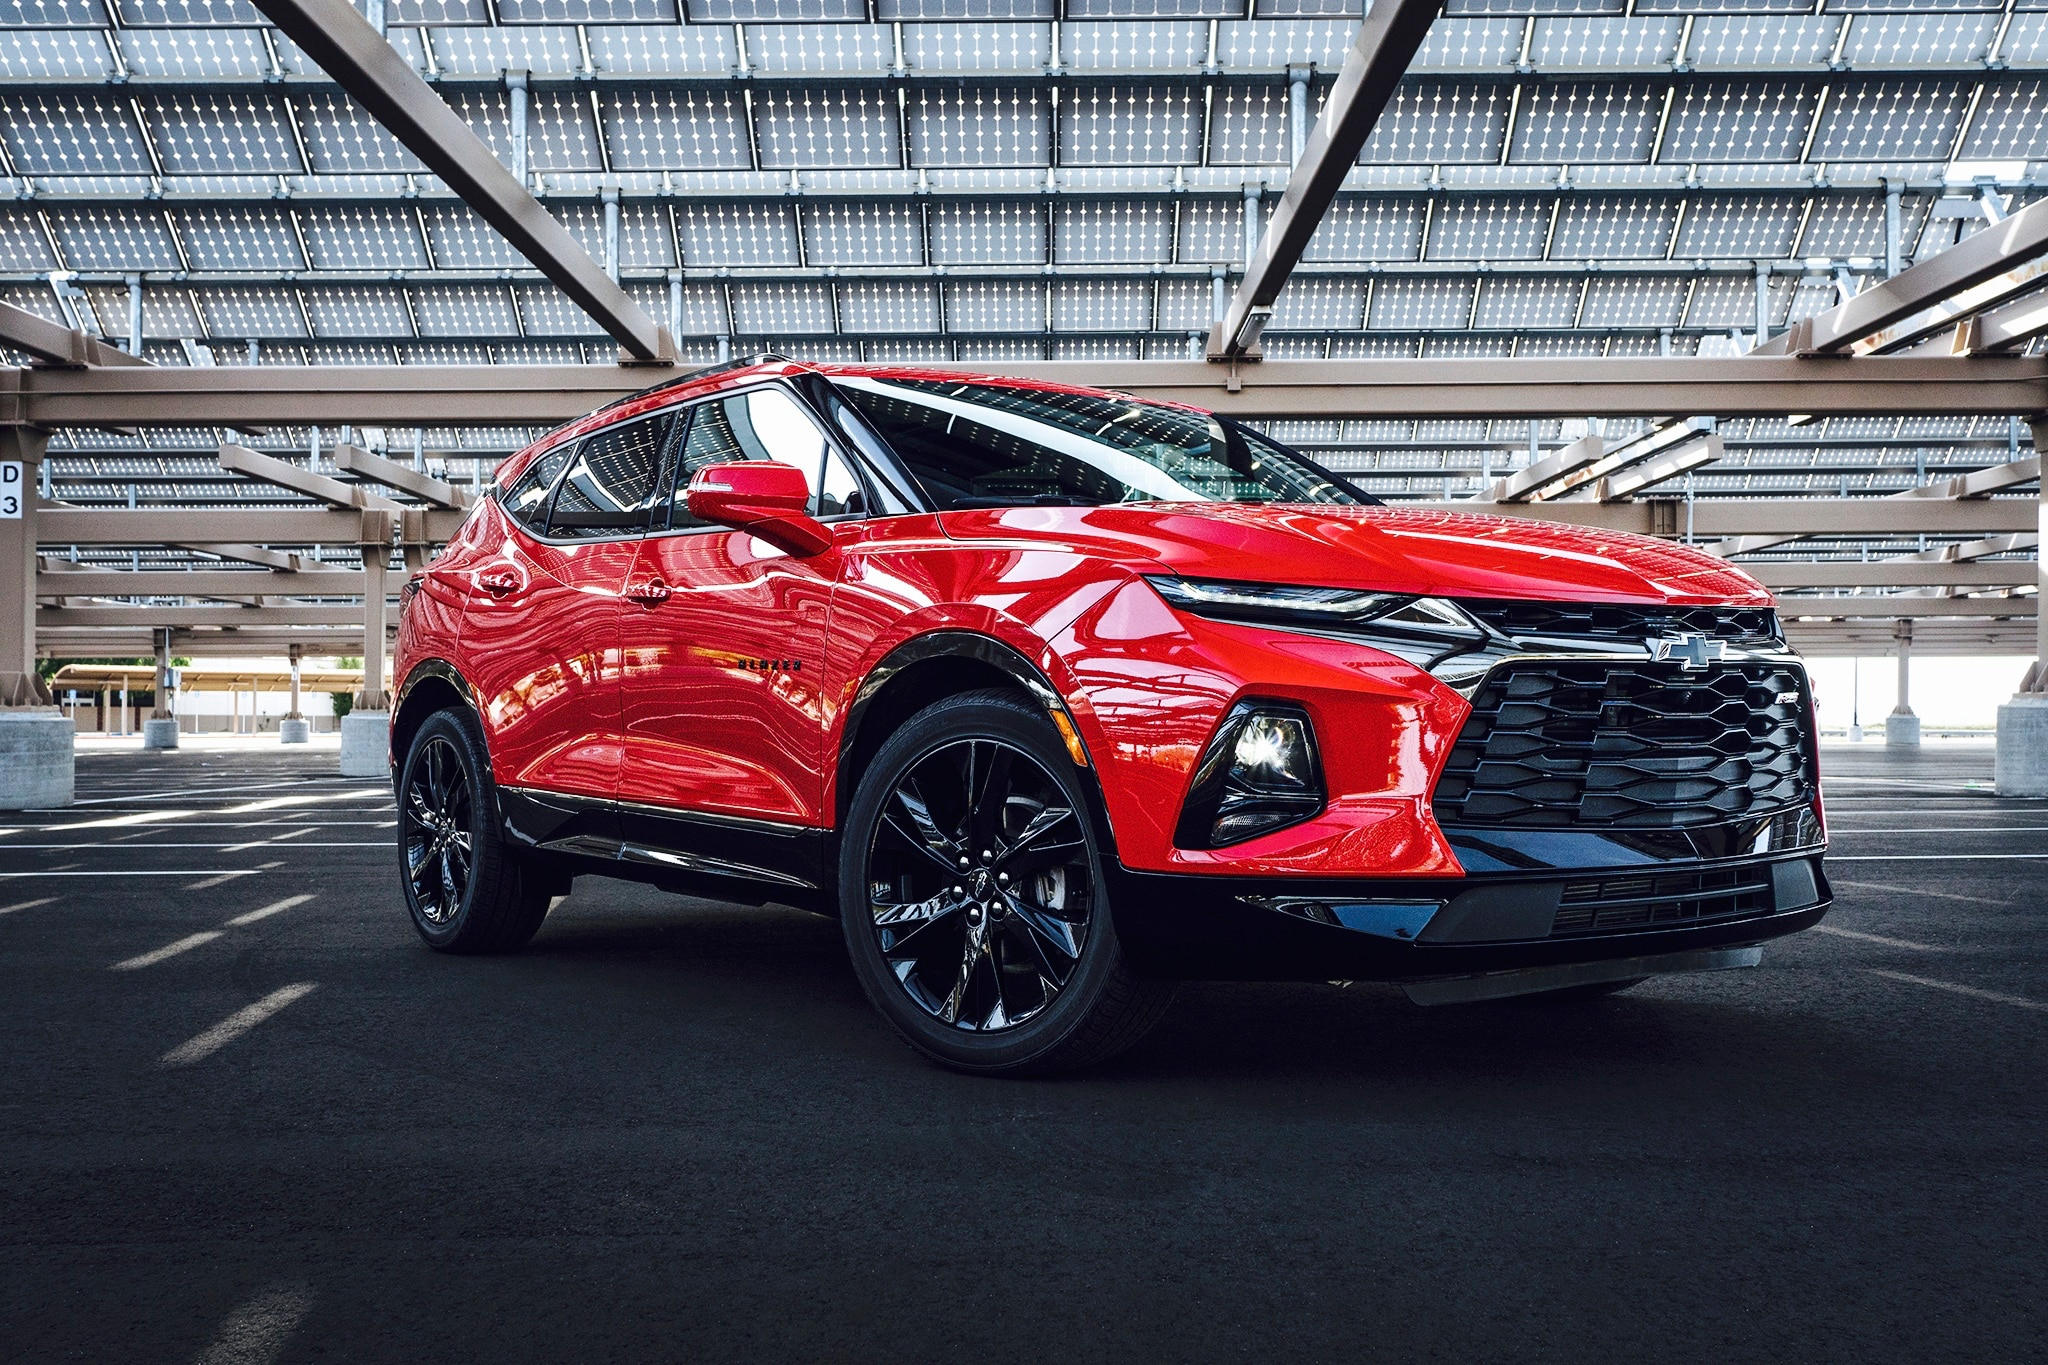 2019 Chevrolet Blazer RS 09